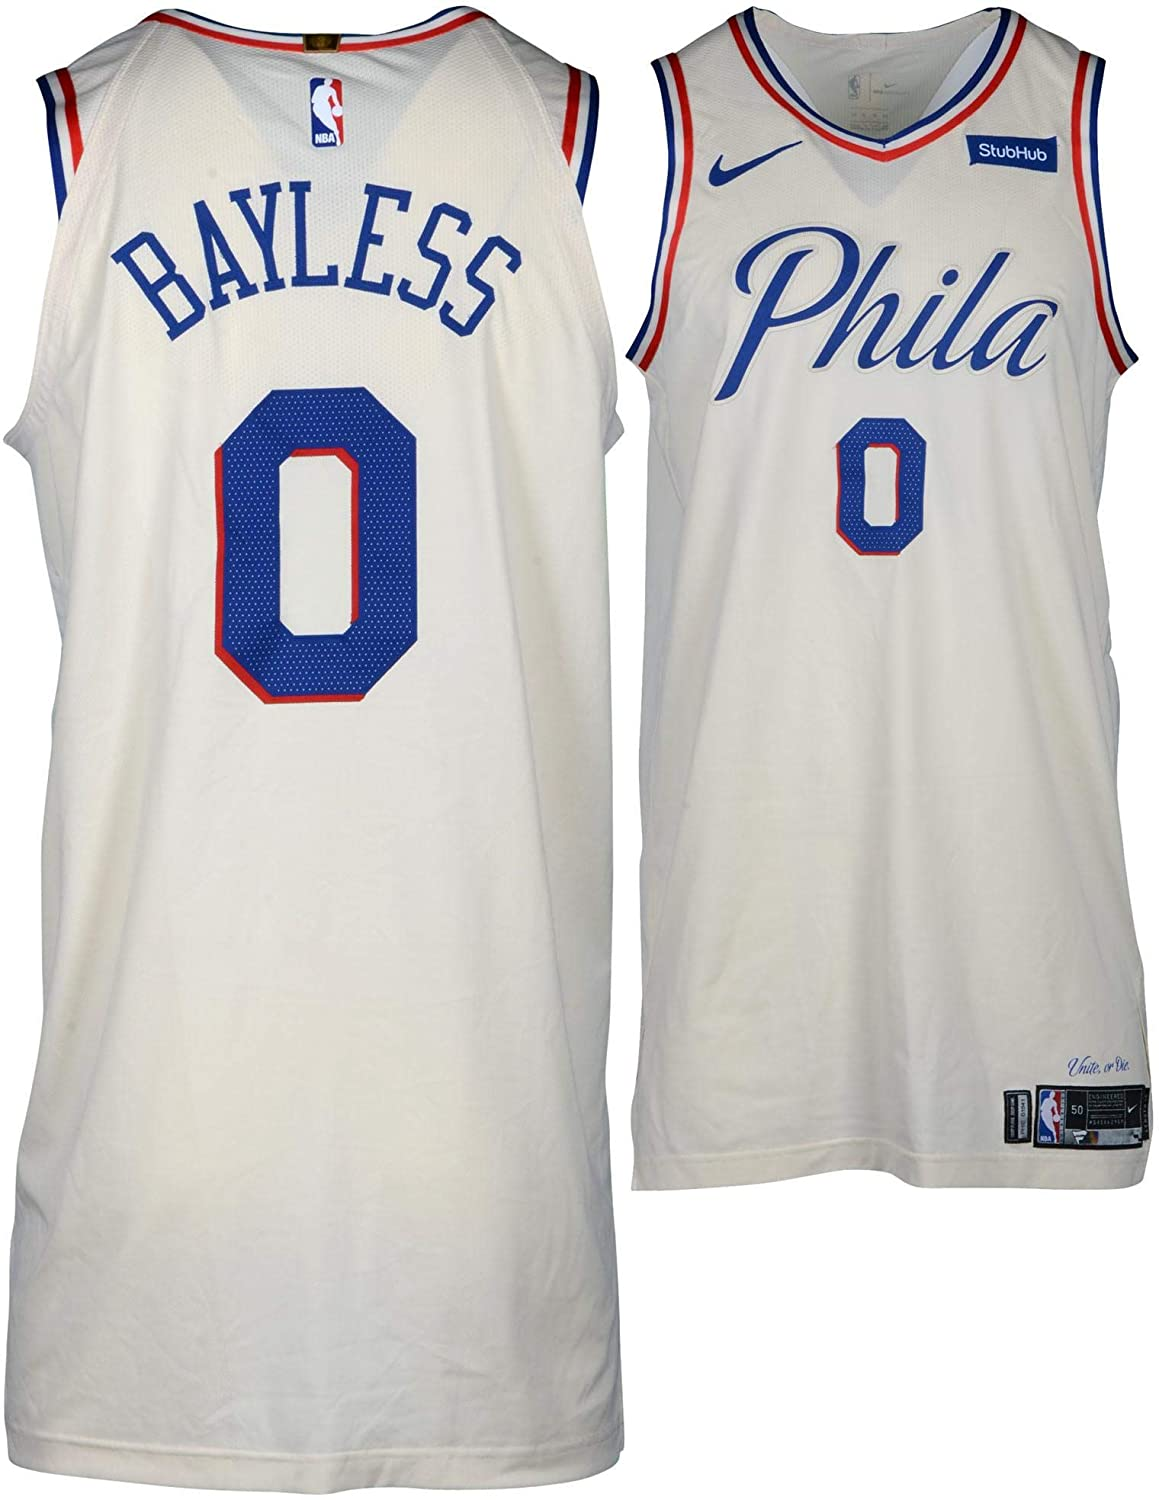 new concept c1f9d 30c80 Jerryd Bayless Philadelphia 76ers Game-Used #0 Cream Jersey ...